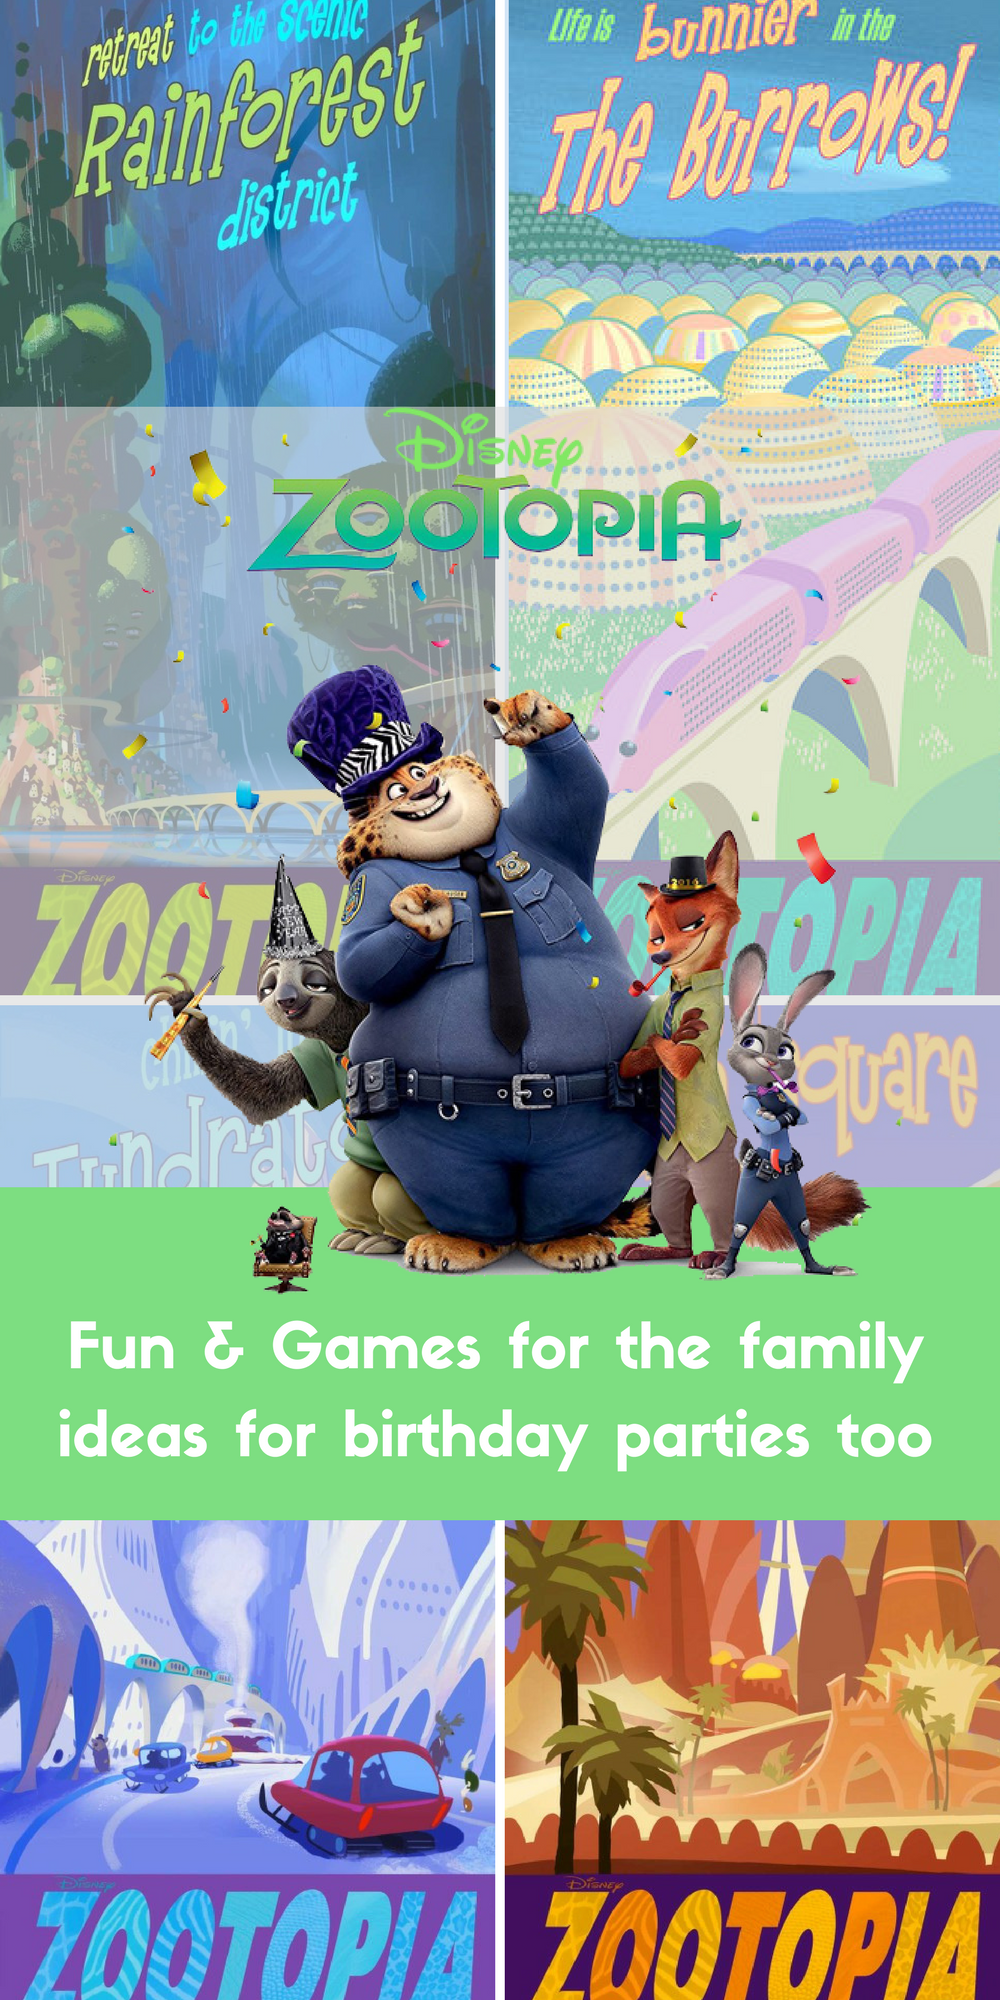 Zootopia Free print puts from Wonder Kids